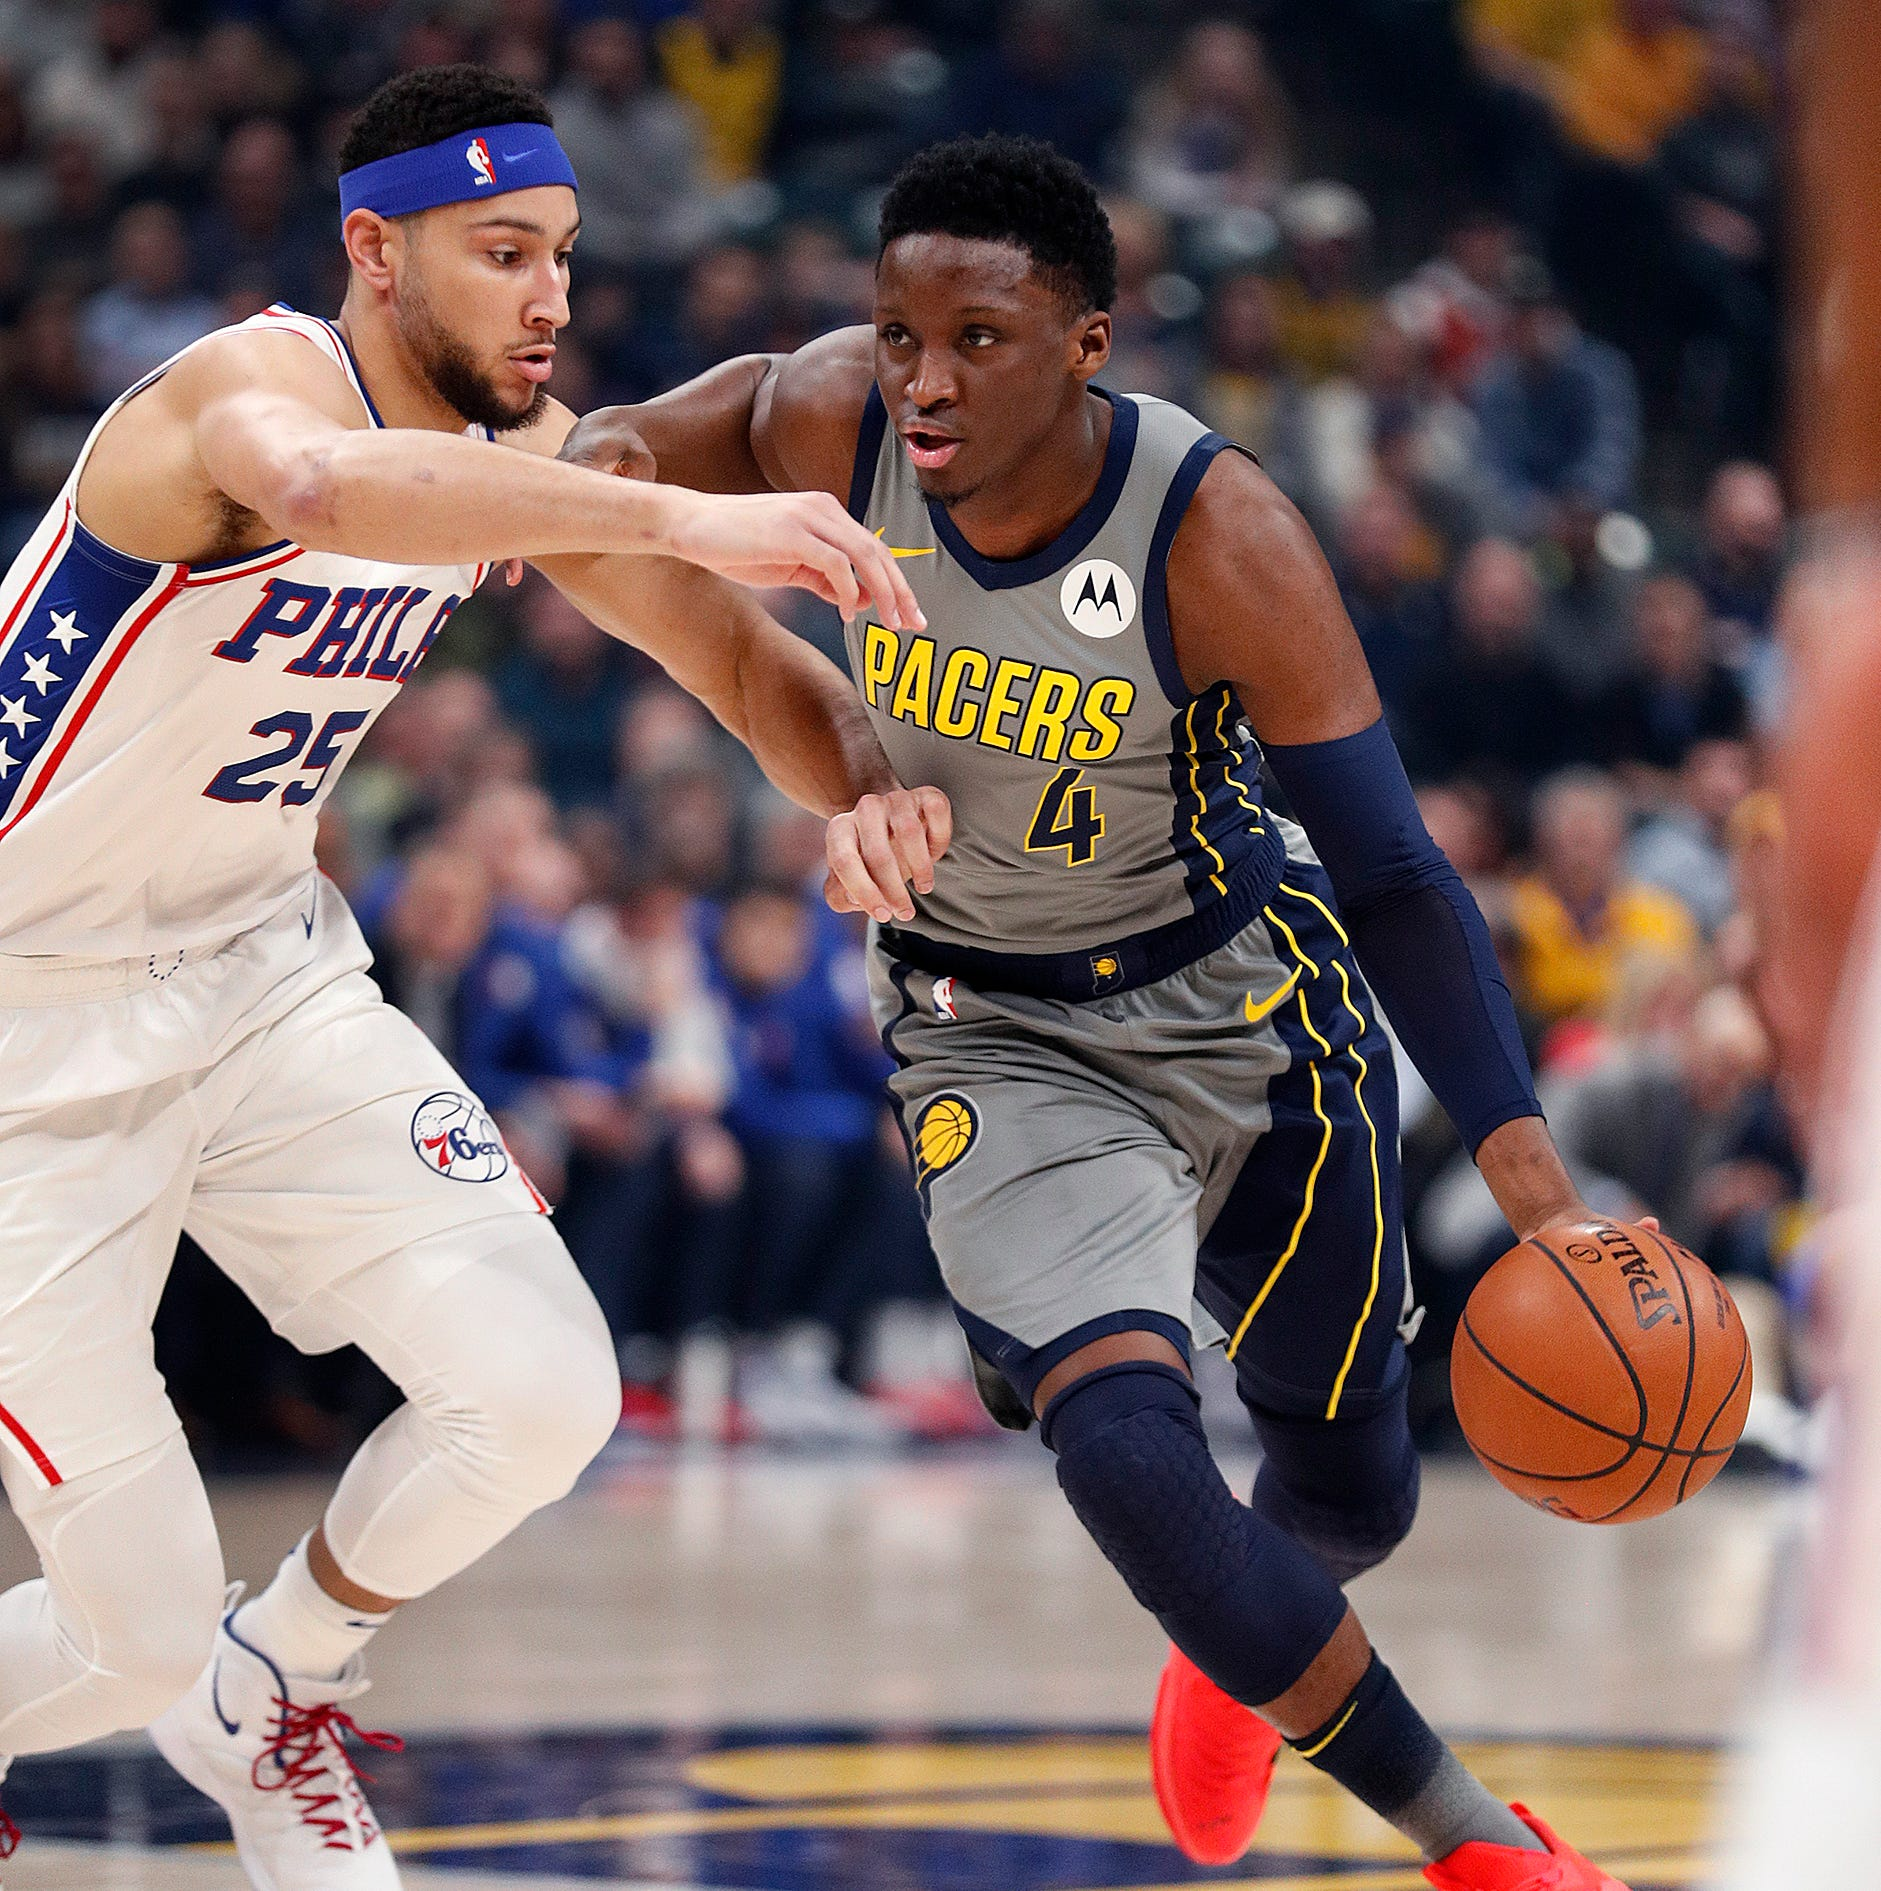 Victor Oladipo after disappointing loss to Sixers: 'If I'm injured I wouldn't be playing'